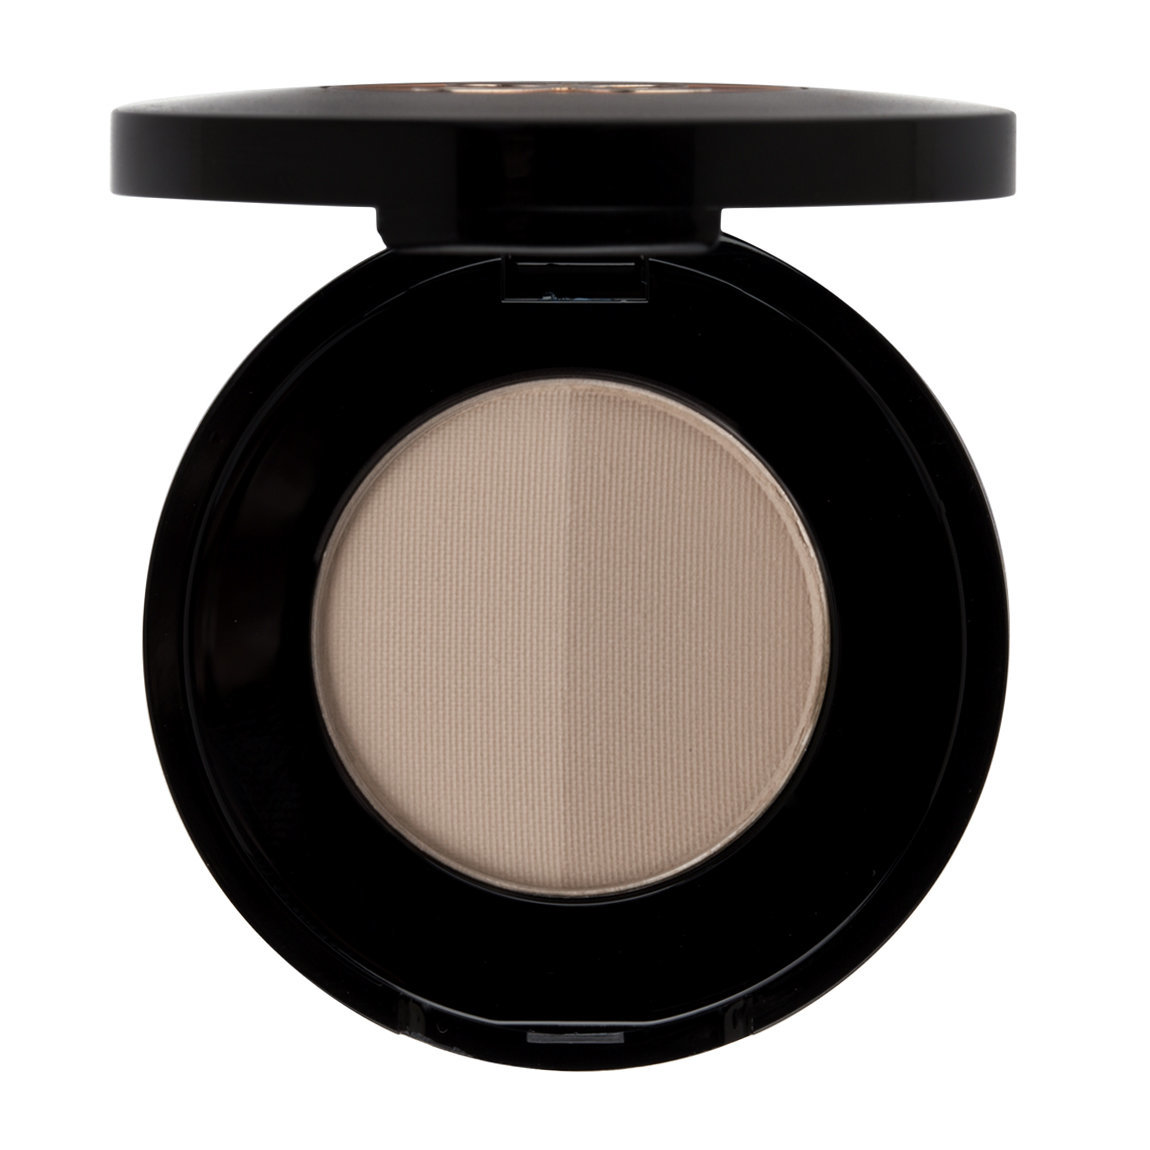 Anastasia Beverly Hills Brow Powder Duo Taupe alternative view 1 - product swatch.